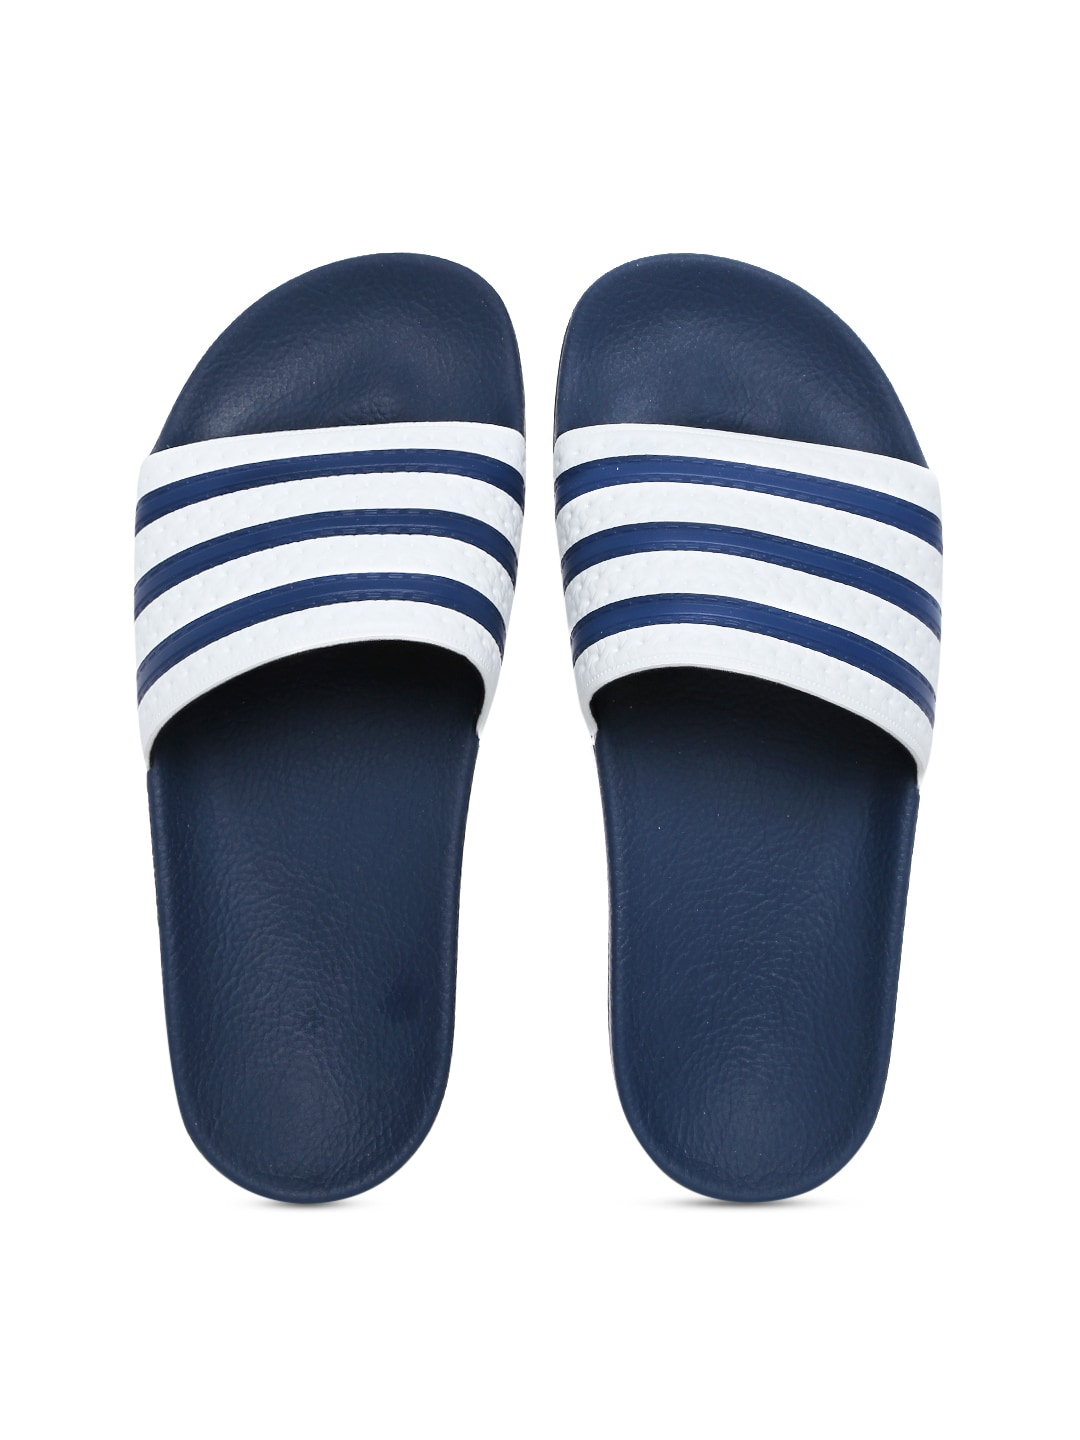 3bfbb3385acfe Adidas Slippers - Buy Adidas Slipper   Flip Flops Online India